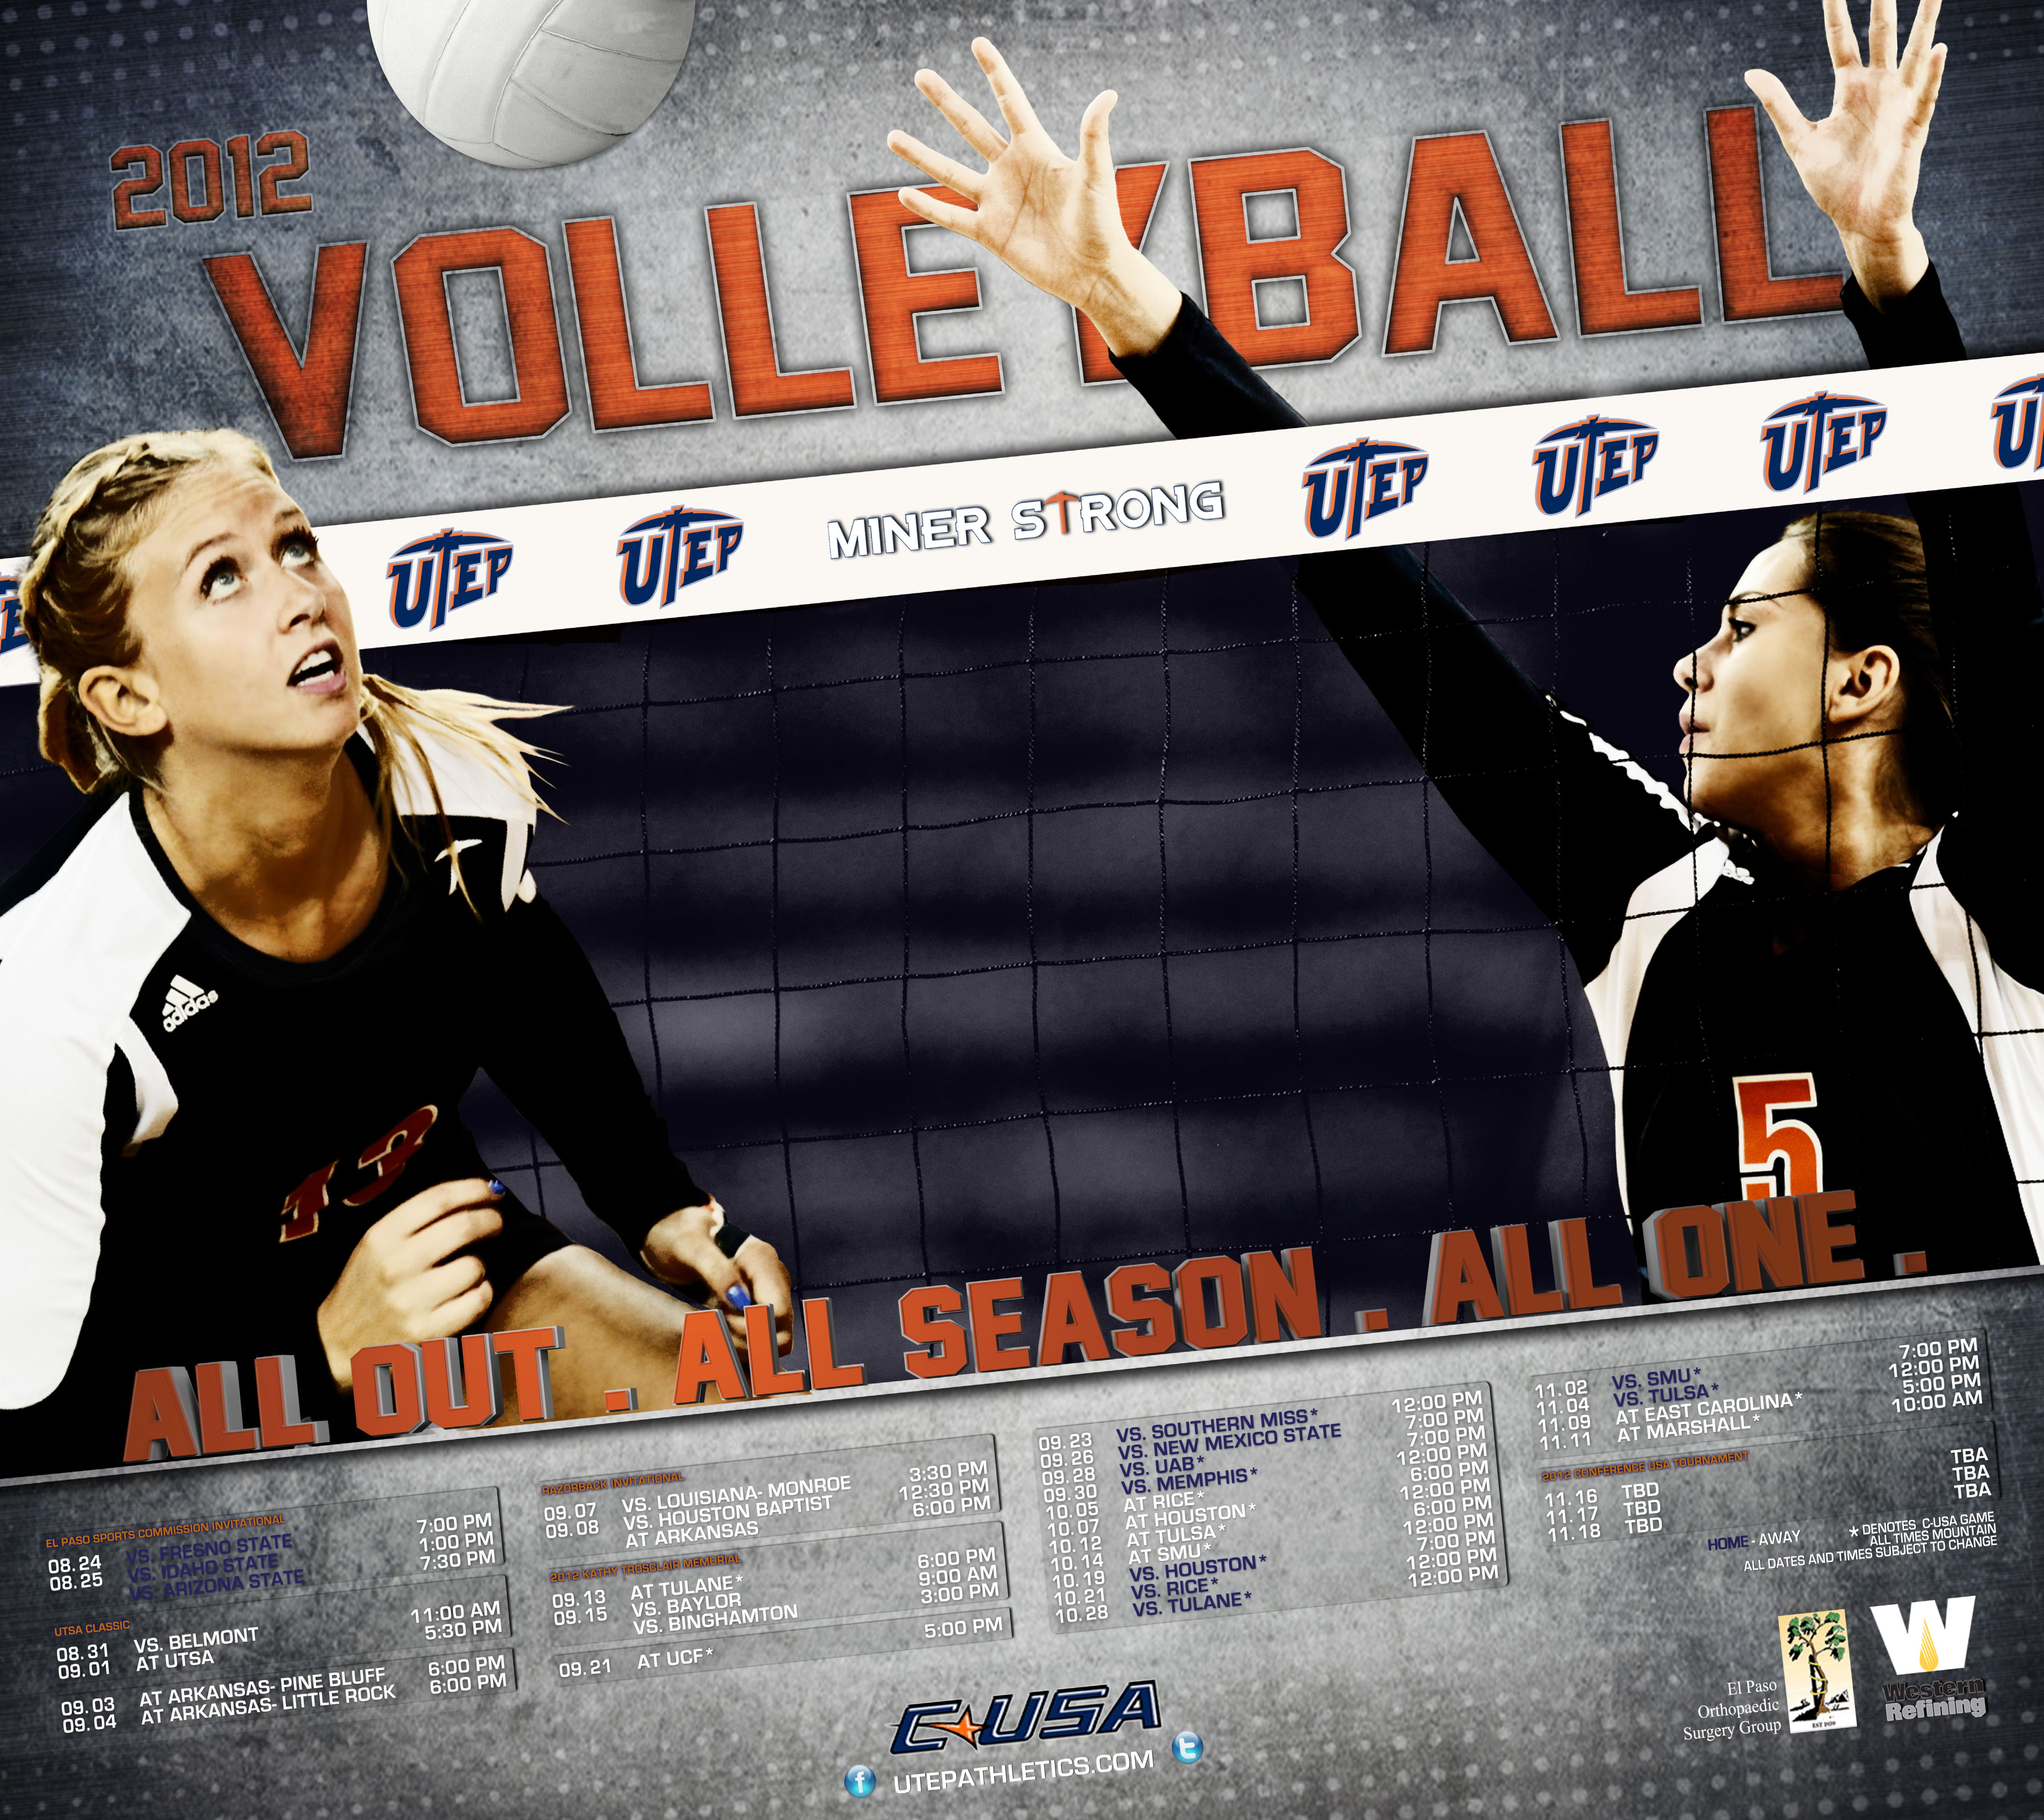 2012 Utep Volleyball Poster Volleyball Posters Sport Poster Poster